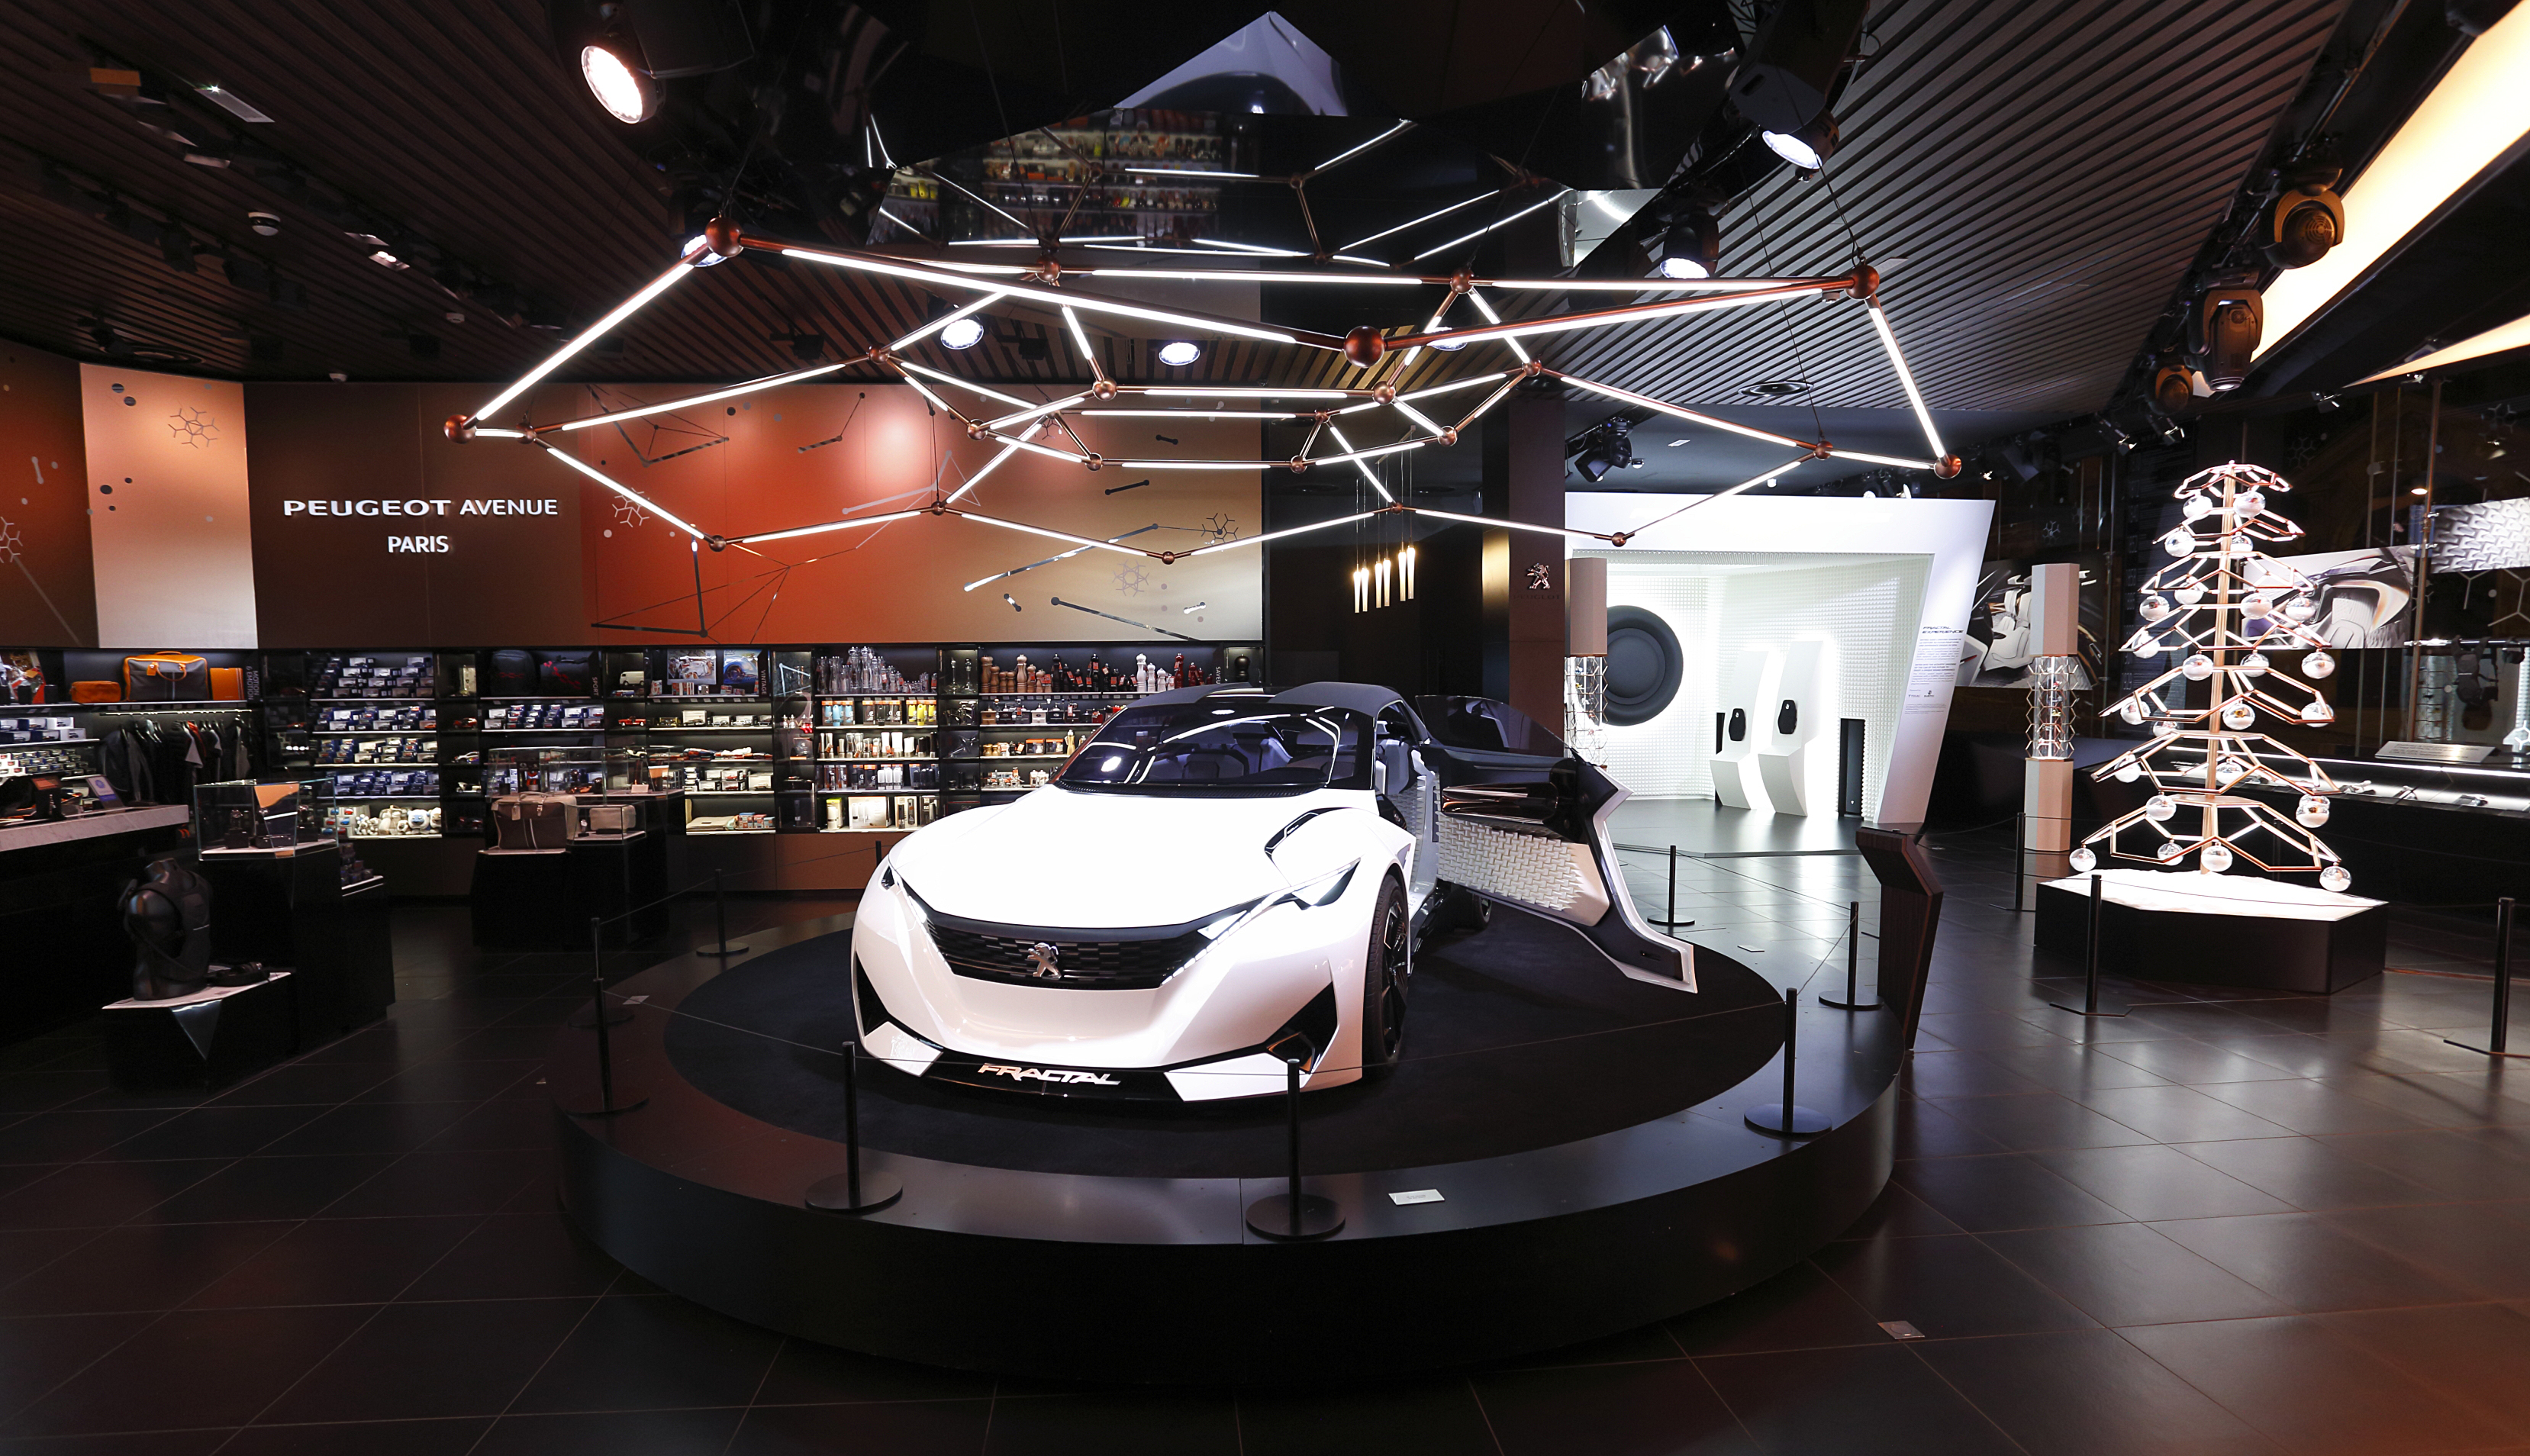 peugeot, peugeot avenue, fermeture, champs elysees, showroom